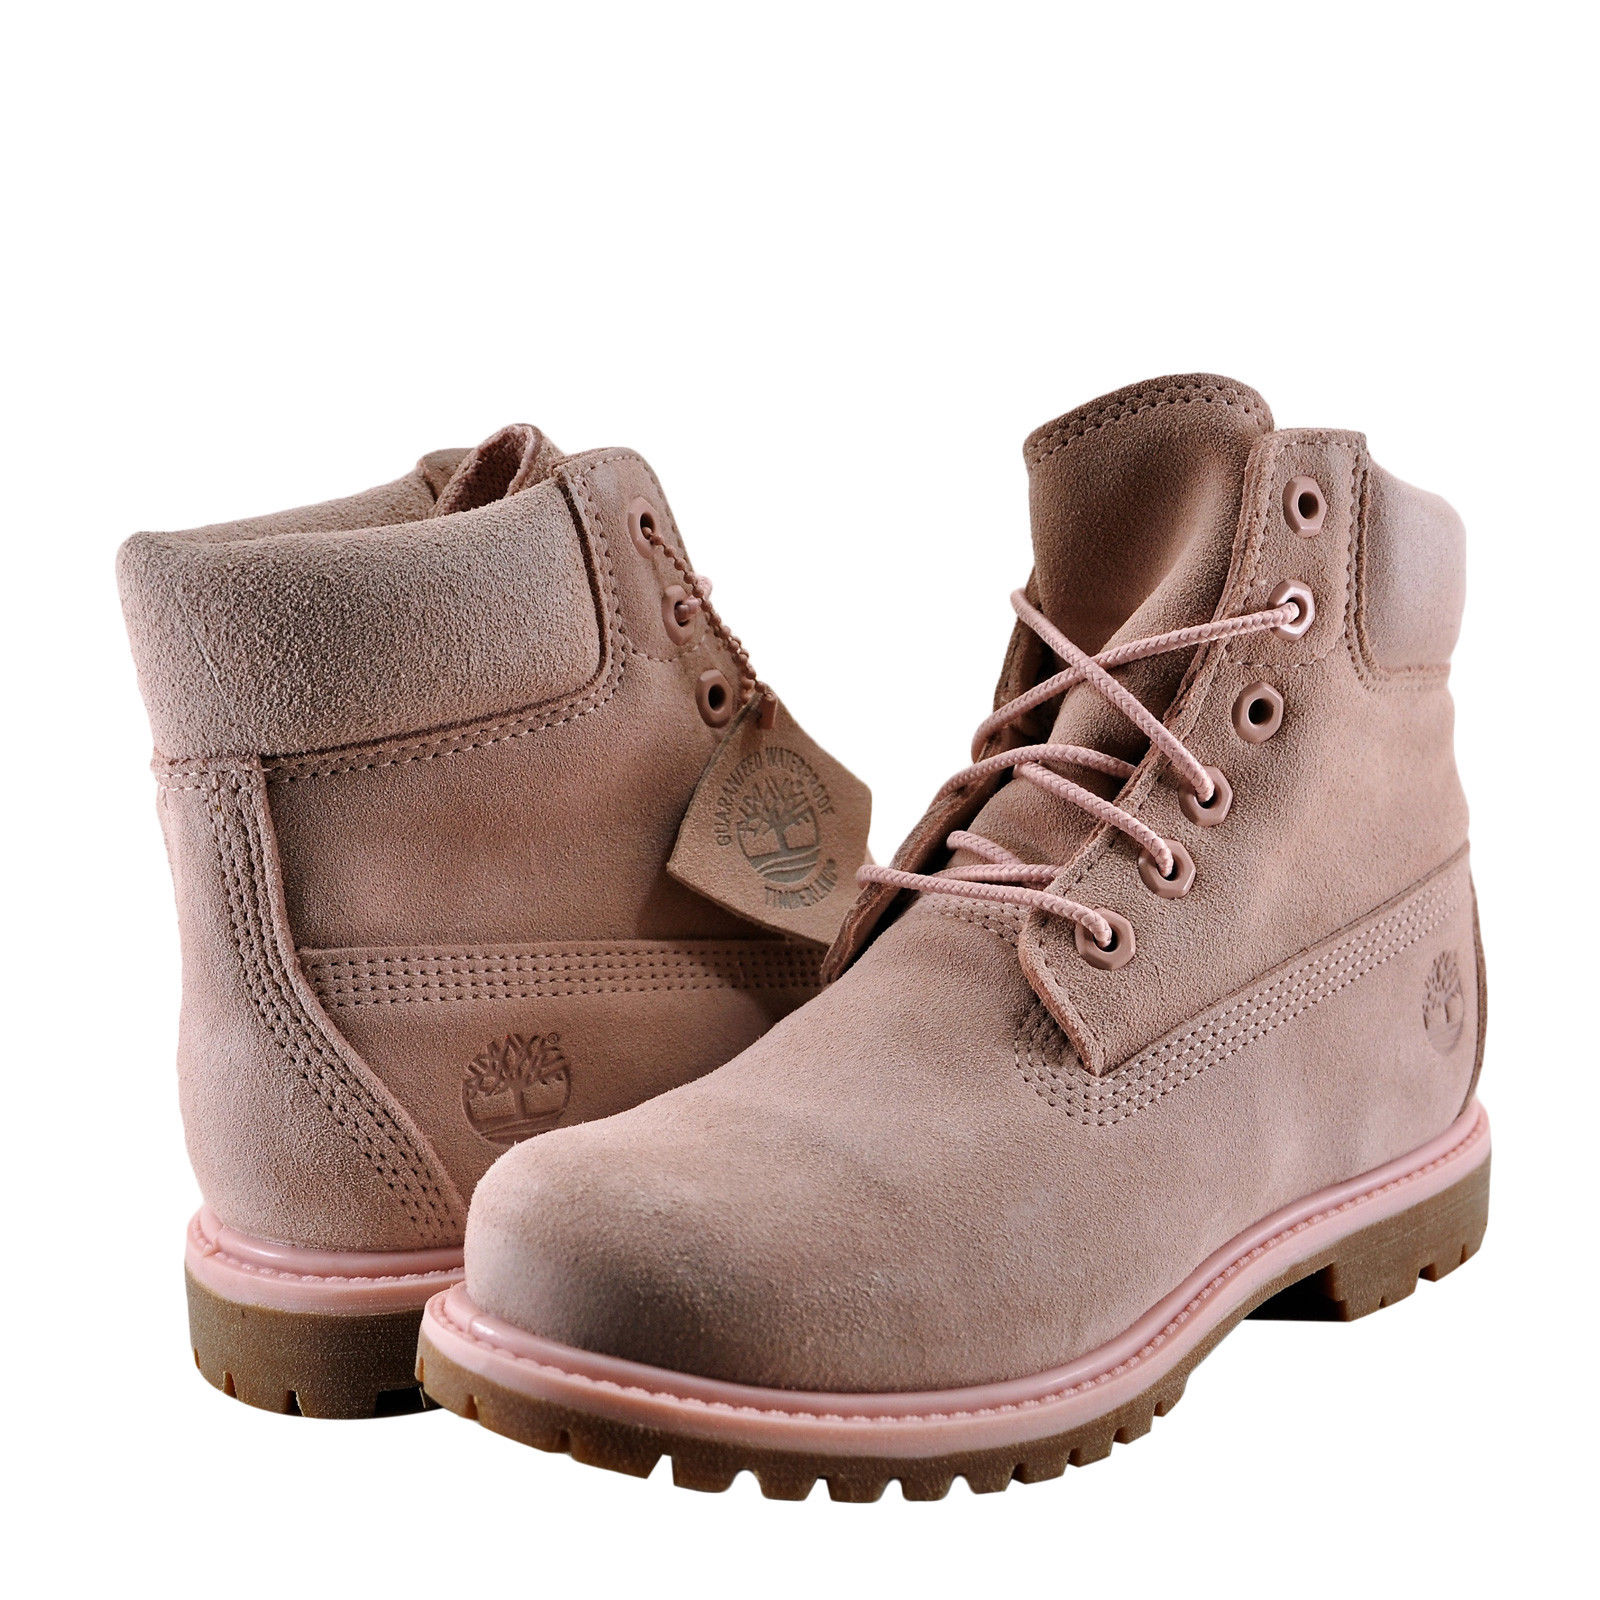 Timberland 6 Inch Premium Lace Up Women's by Timberland